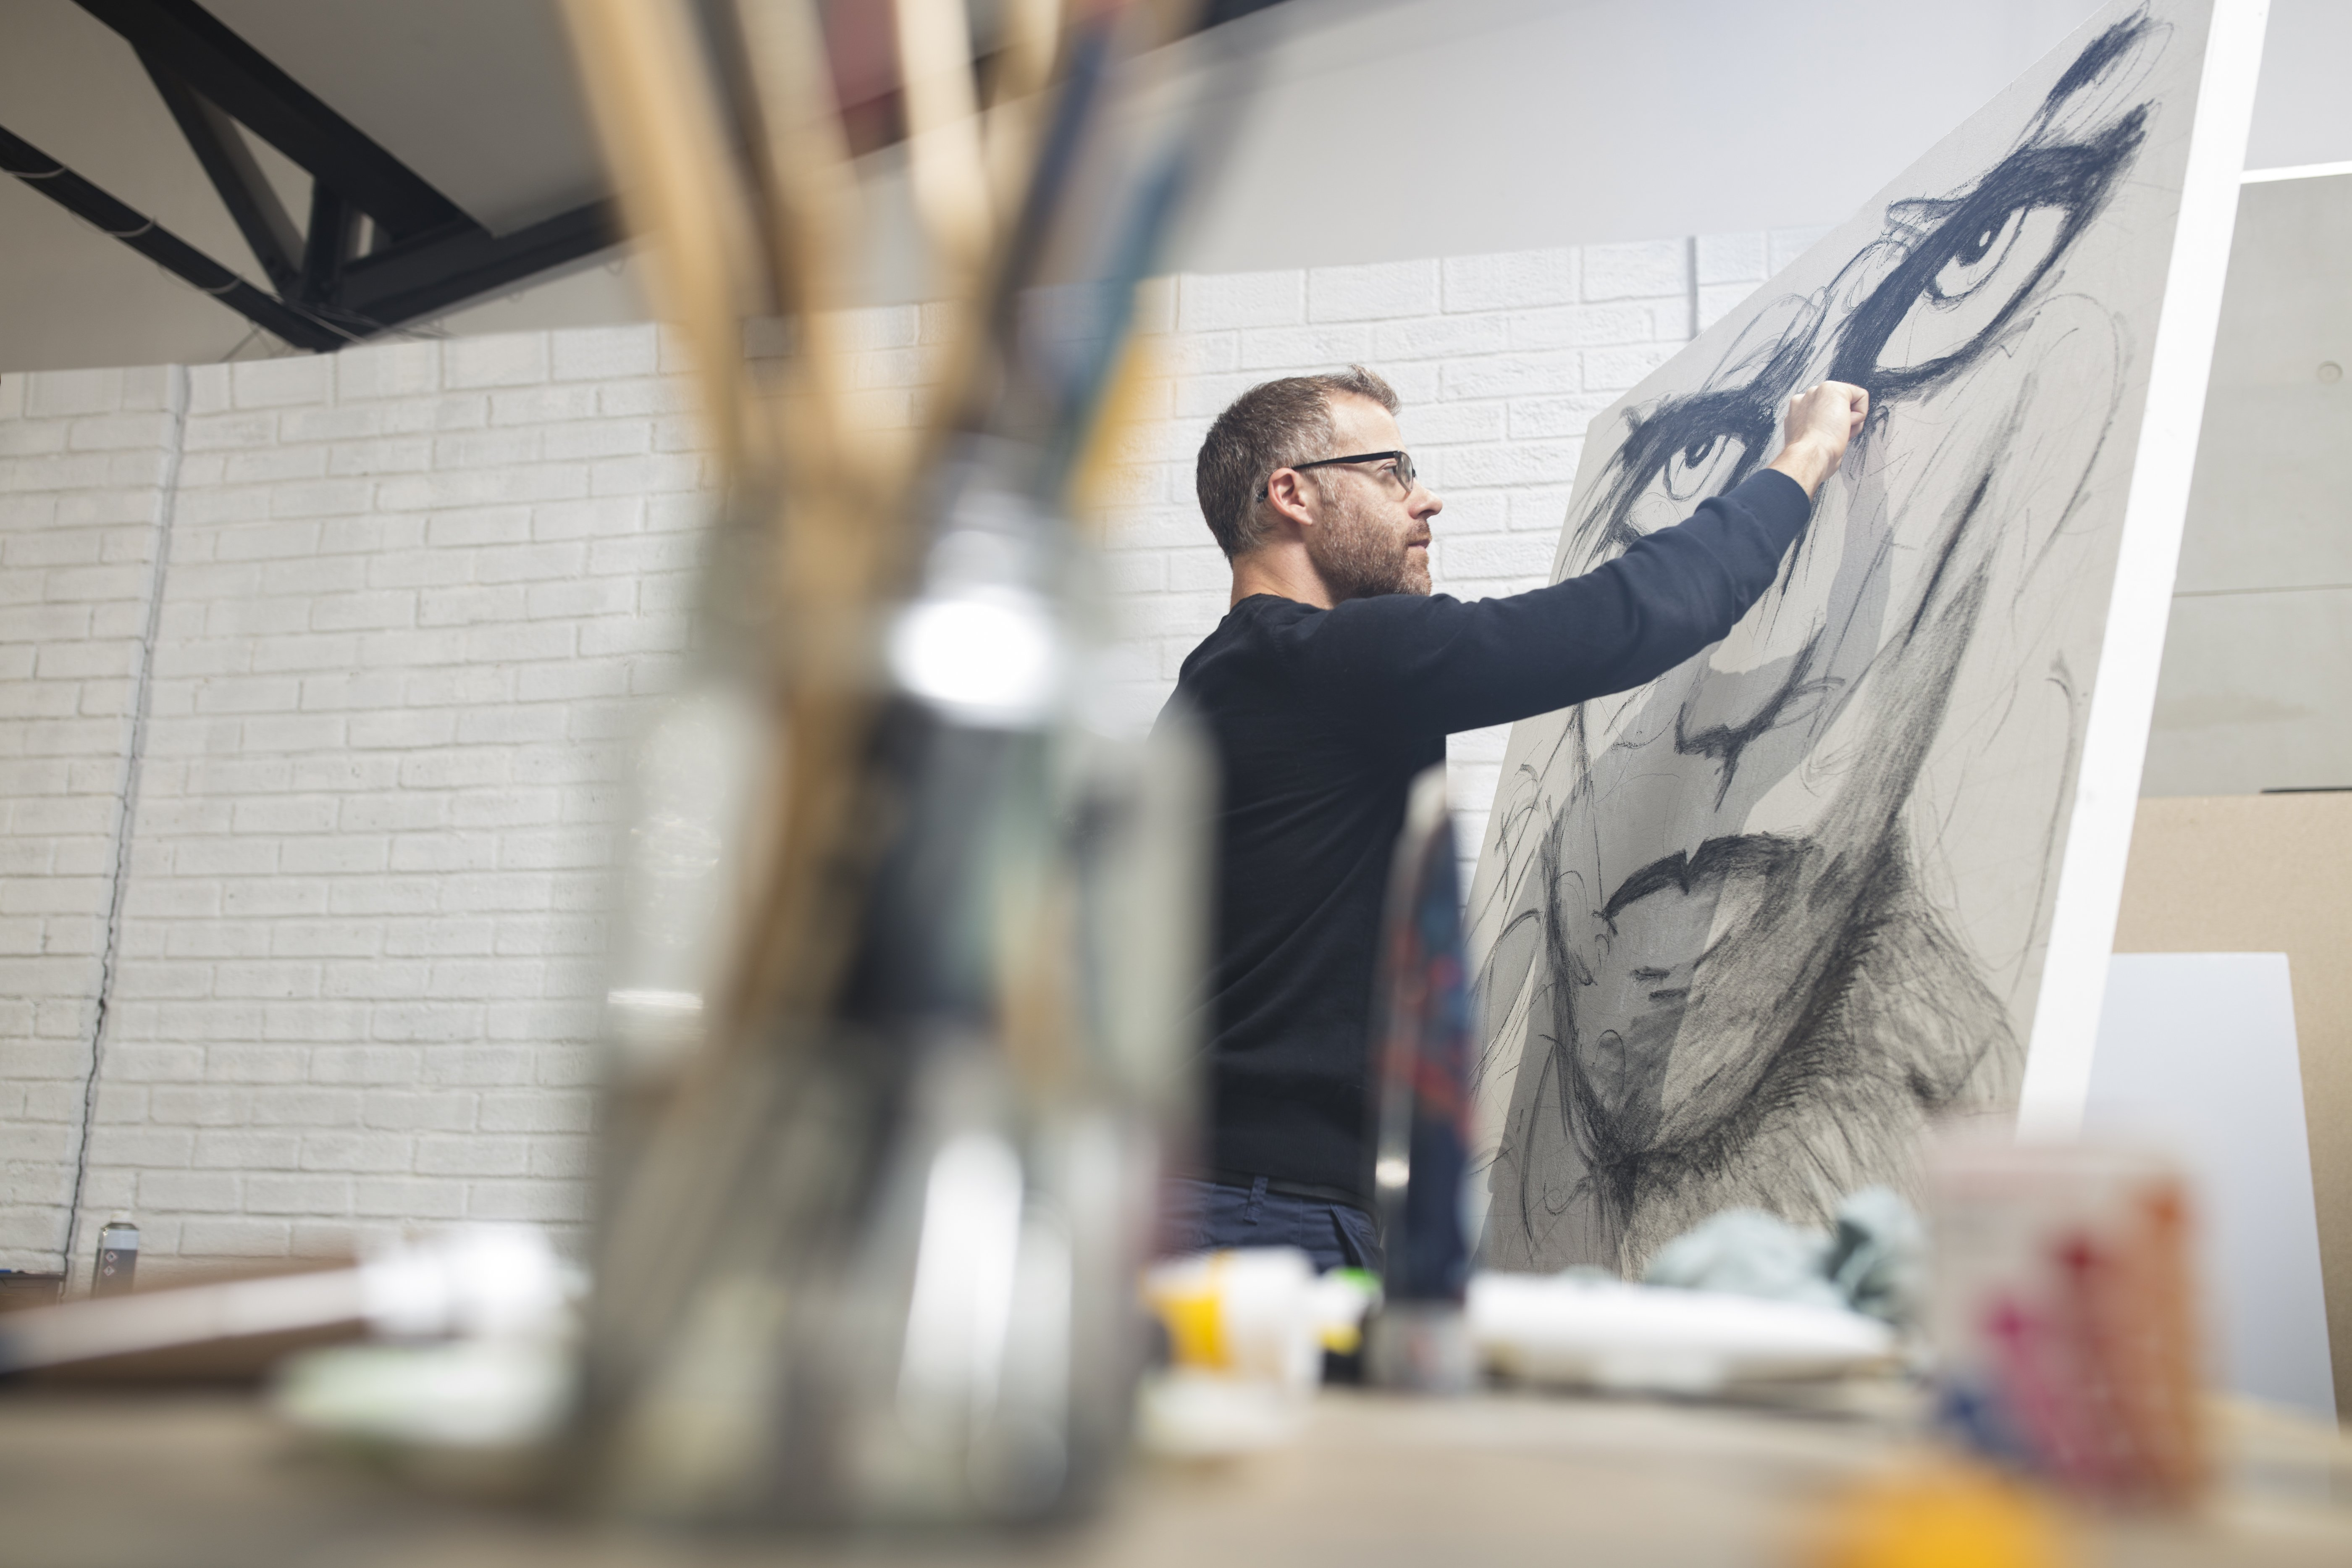 Man drawing an image in a  studio | Photo: Getty Images